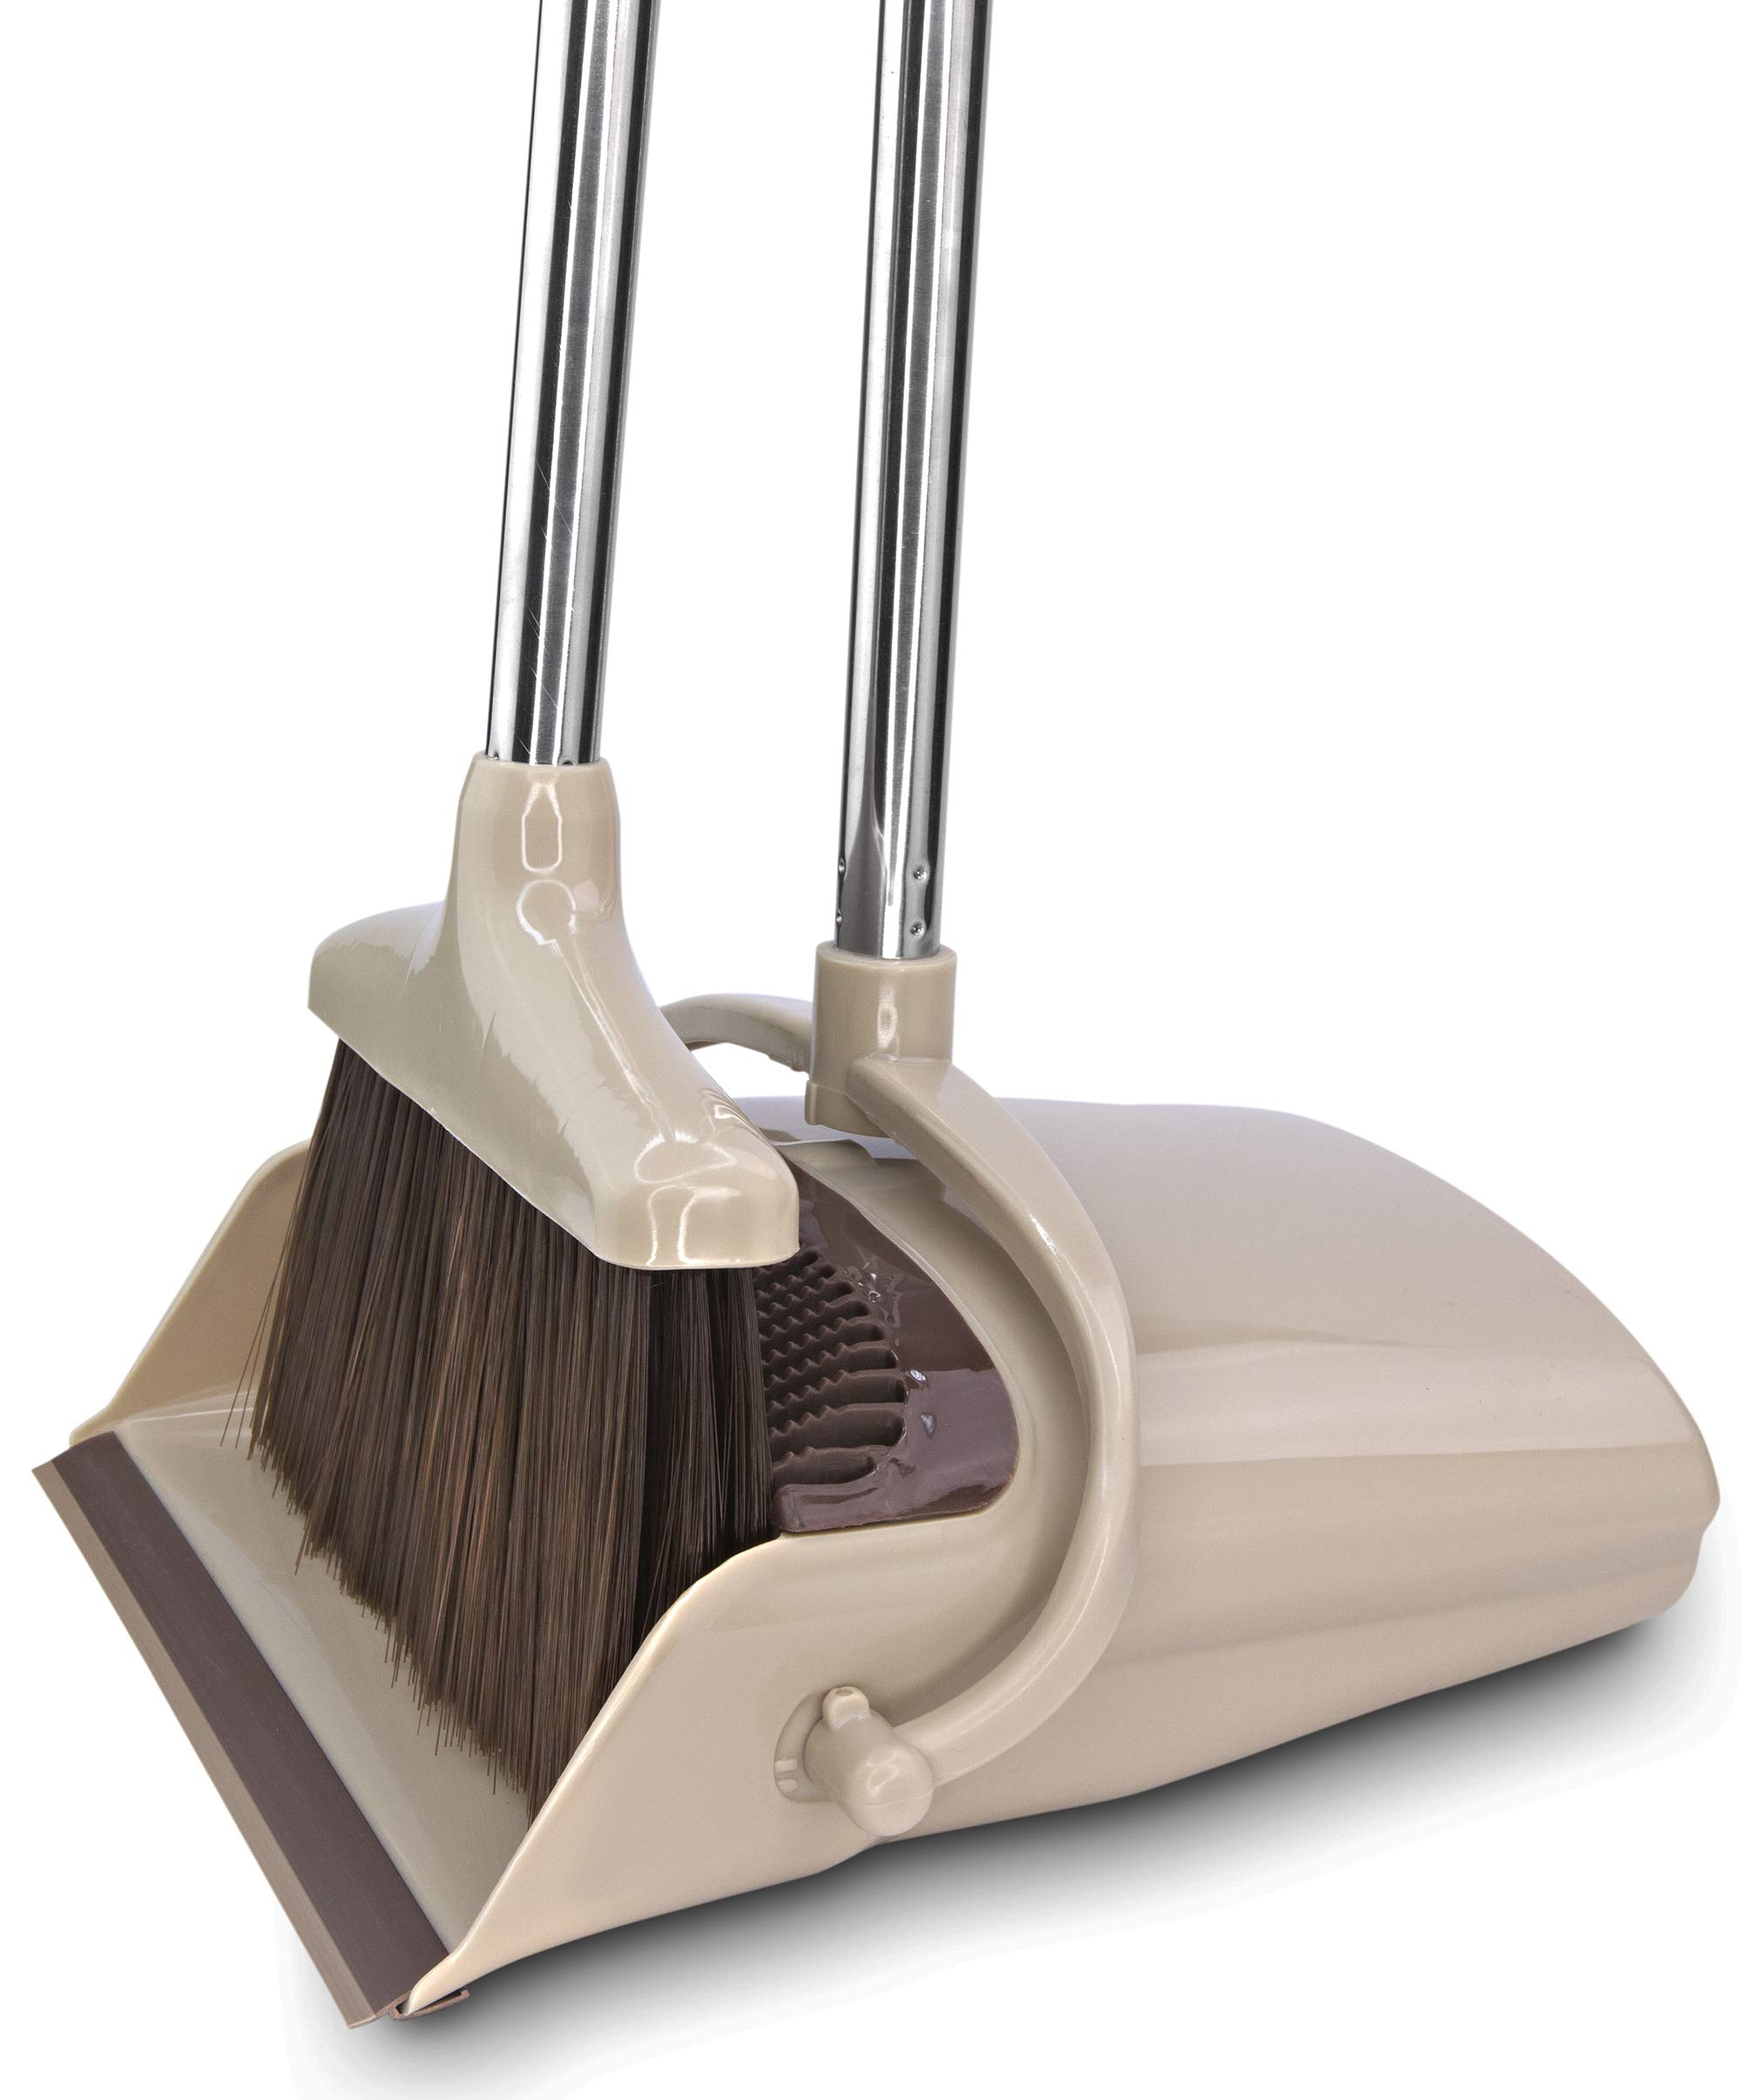 Broom and Dustpan Set [2019 Version] - Stand Up Brush and Dust Pan Combo for Upright Cleaning - Remove Hair with Built-in Wisp Scraper - Kitchen, Outdoor, Hardwood Floor & Garage Tiles Clean Supplies by Belleford (Image #1)